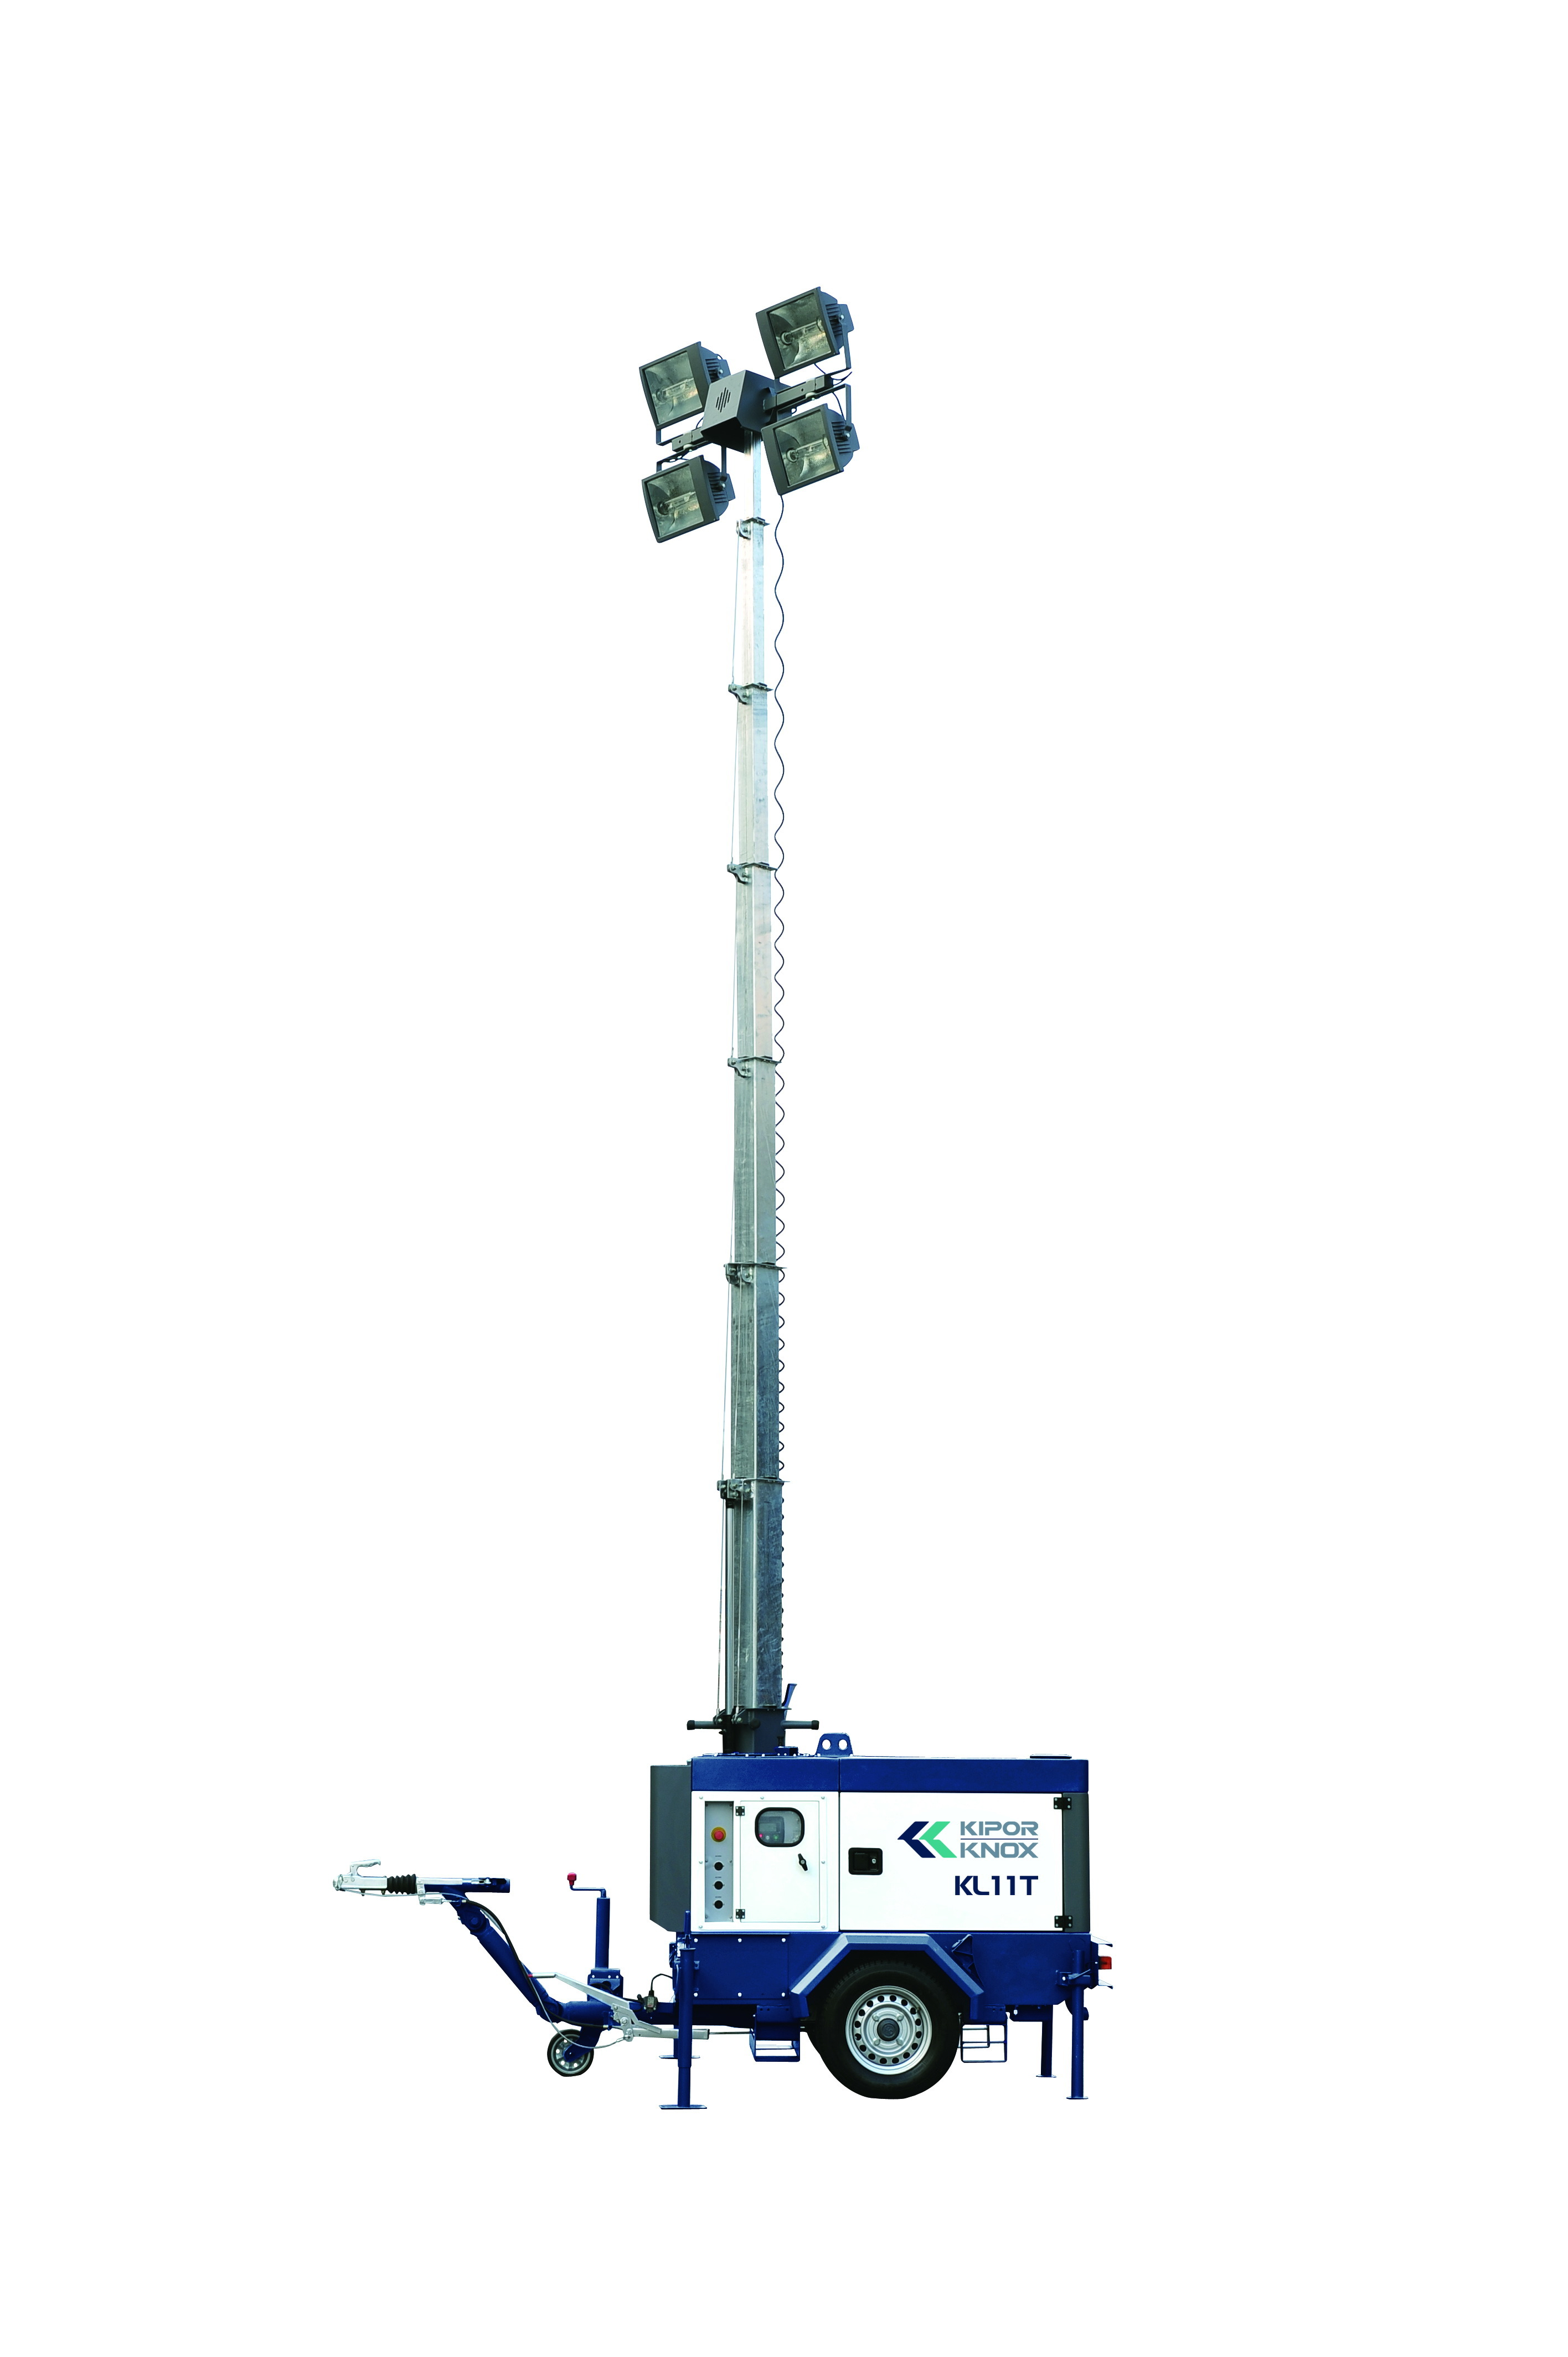 Kipor Diesel Generator Outdoor Lighting Tower Kl11t